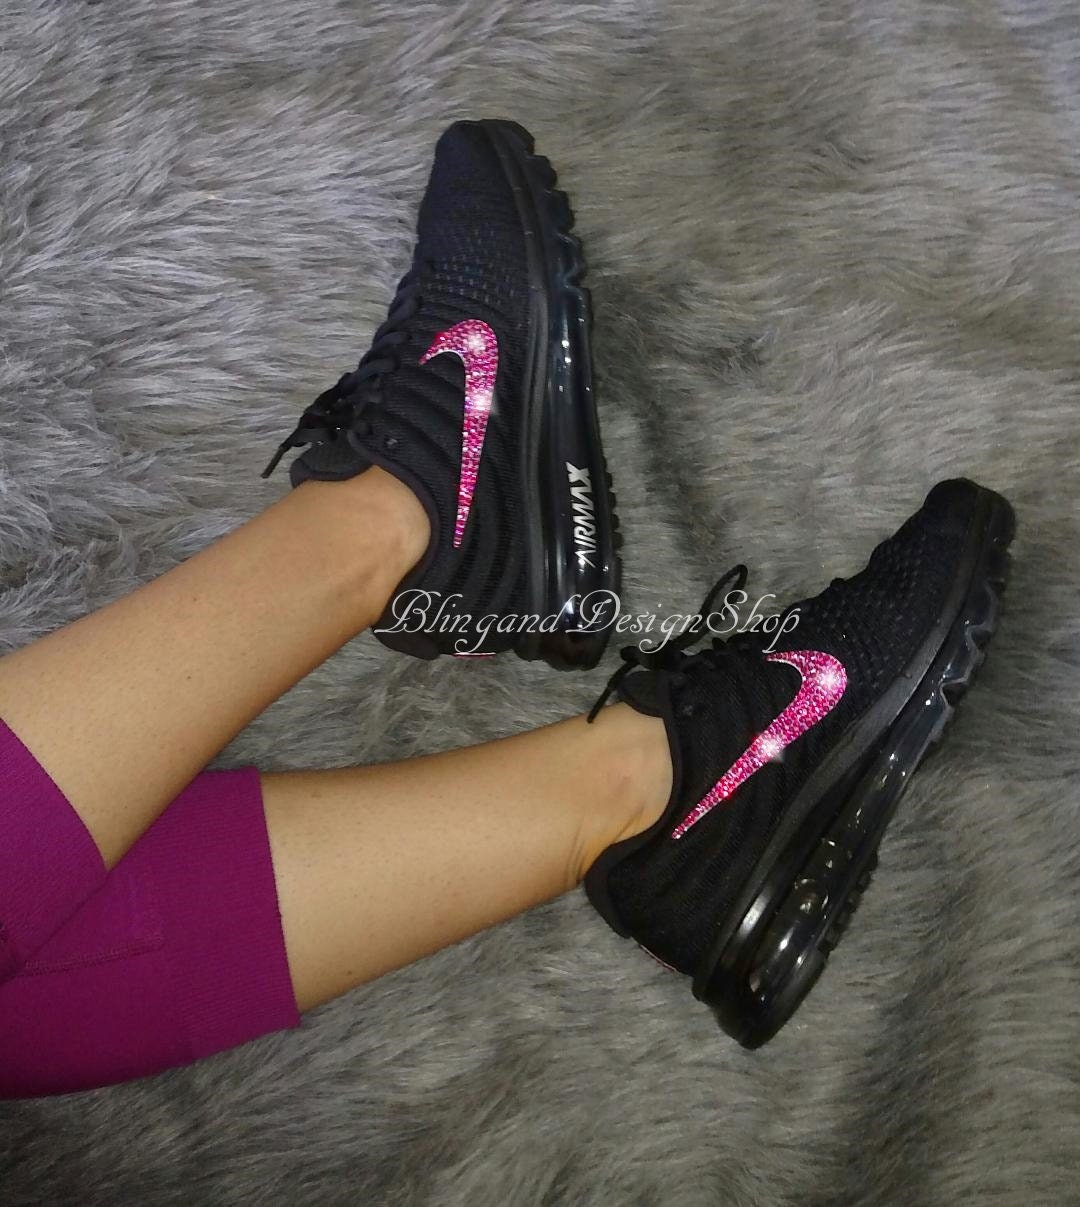 Swarovski Bling Nike Air Max 2017 Women s Nike Shoes Custom with Fuchsia  Swarovski Crystals Rhinestones 592d1529dd5e